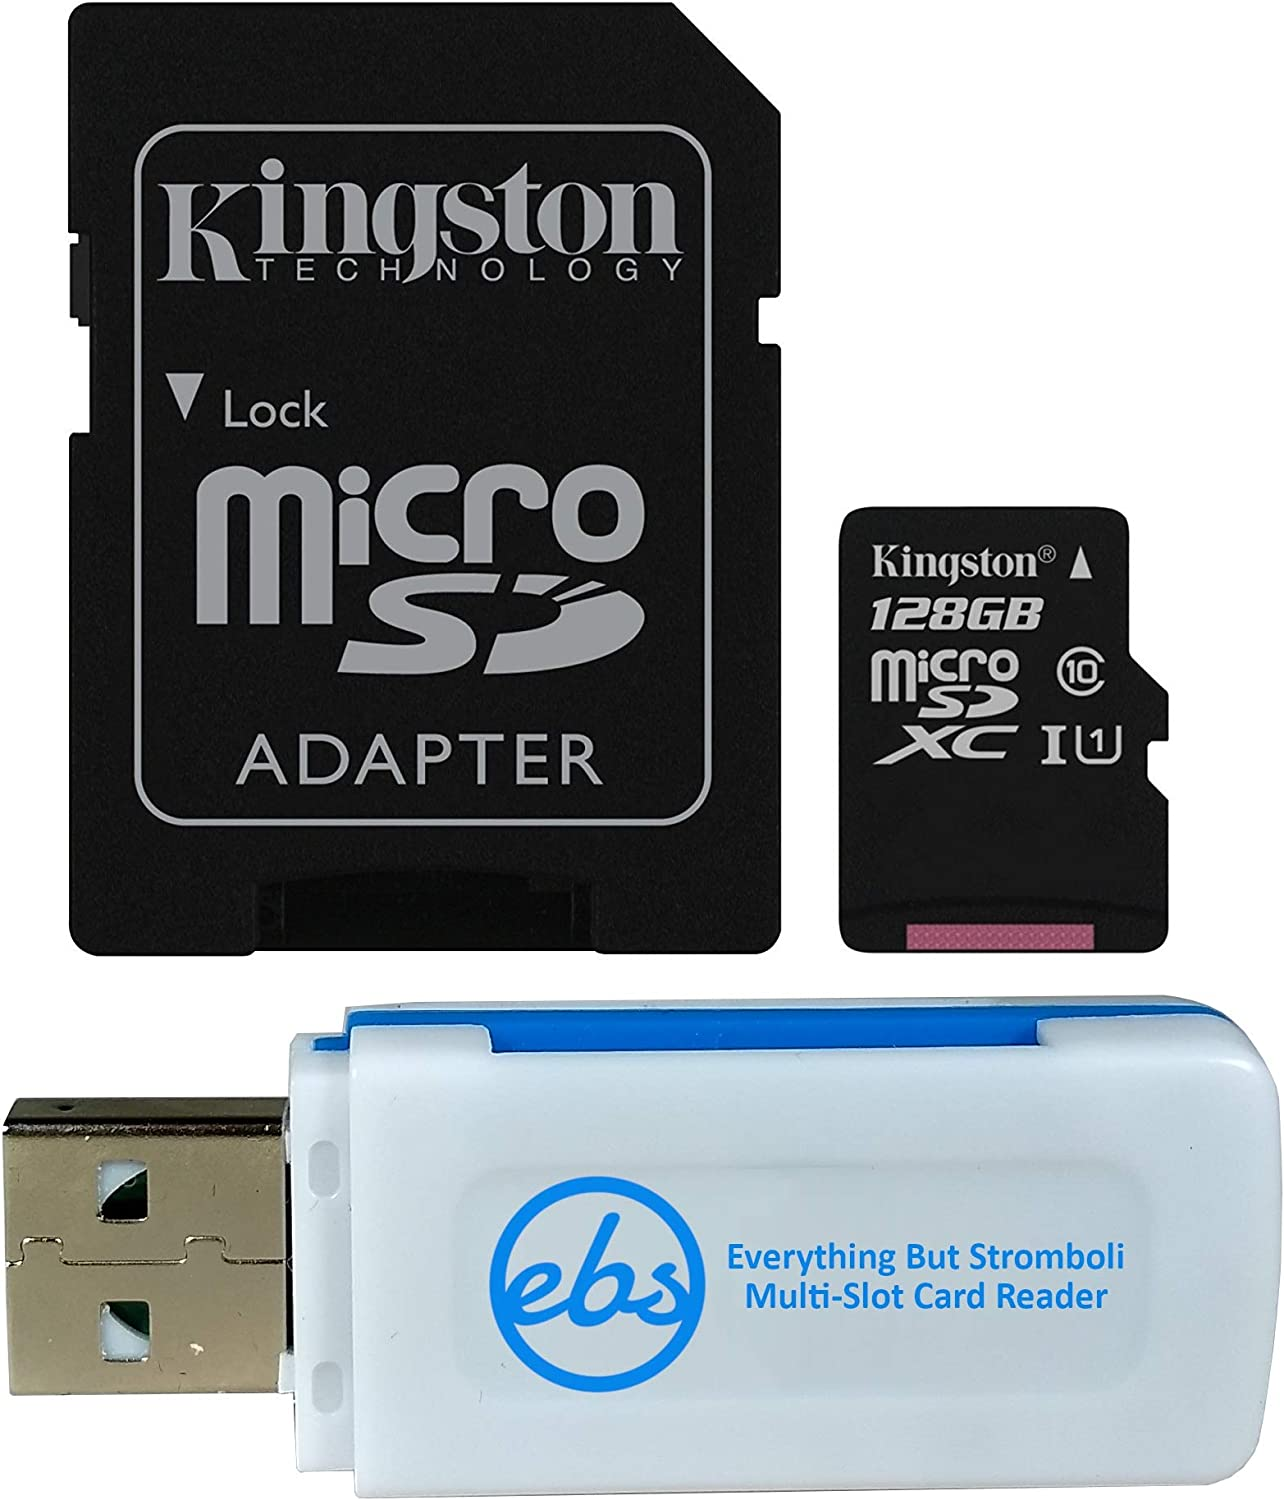 Kingston 128GB SDXC Micro Canvas Select Memory Card and Adapter Works with Samsung Galaxy A50, A40, A30 Cell Phone (SDCS/128GB) Bundle with 1 Everything But Stromboli MicroSD and SD Card Reader